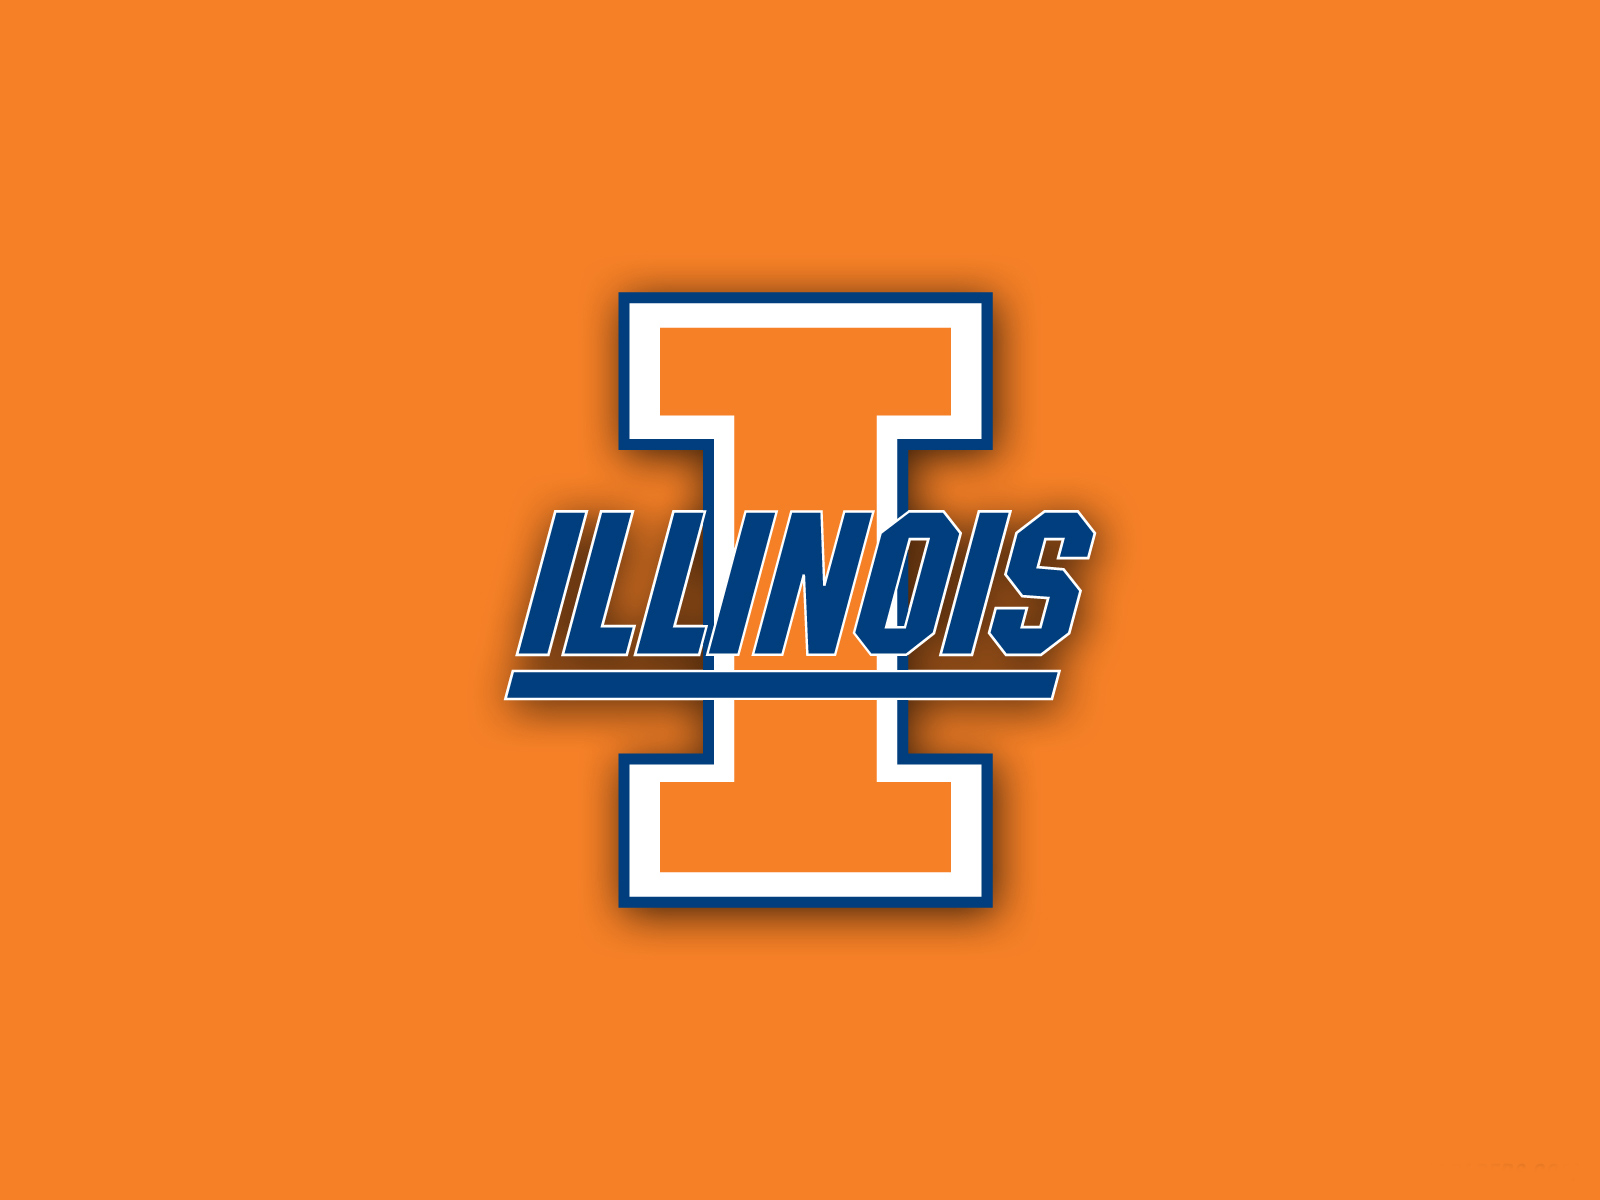 University Of Illinois Desktop Wallpaper computer desktop wallpapers 1600x1200